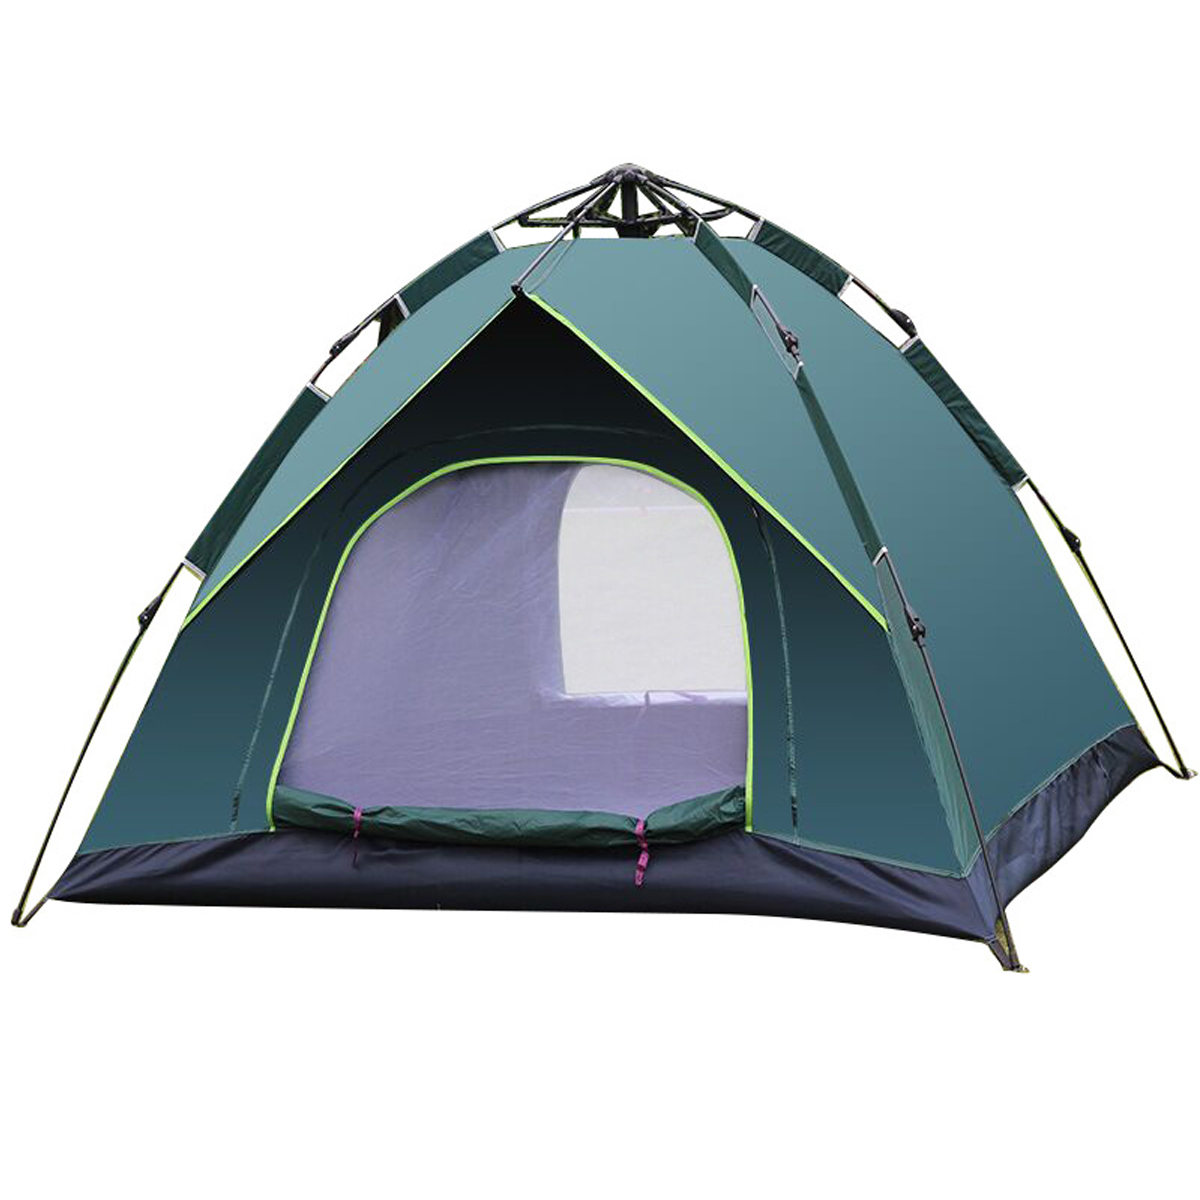 IPRee 3-4 People Waterproof Camping Tent 210T PU Fabric UV Protectionof Tent for Outdoor Travel Hiking